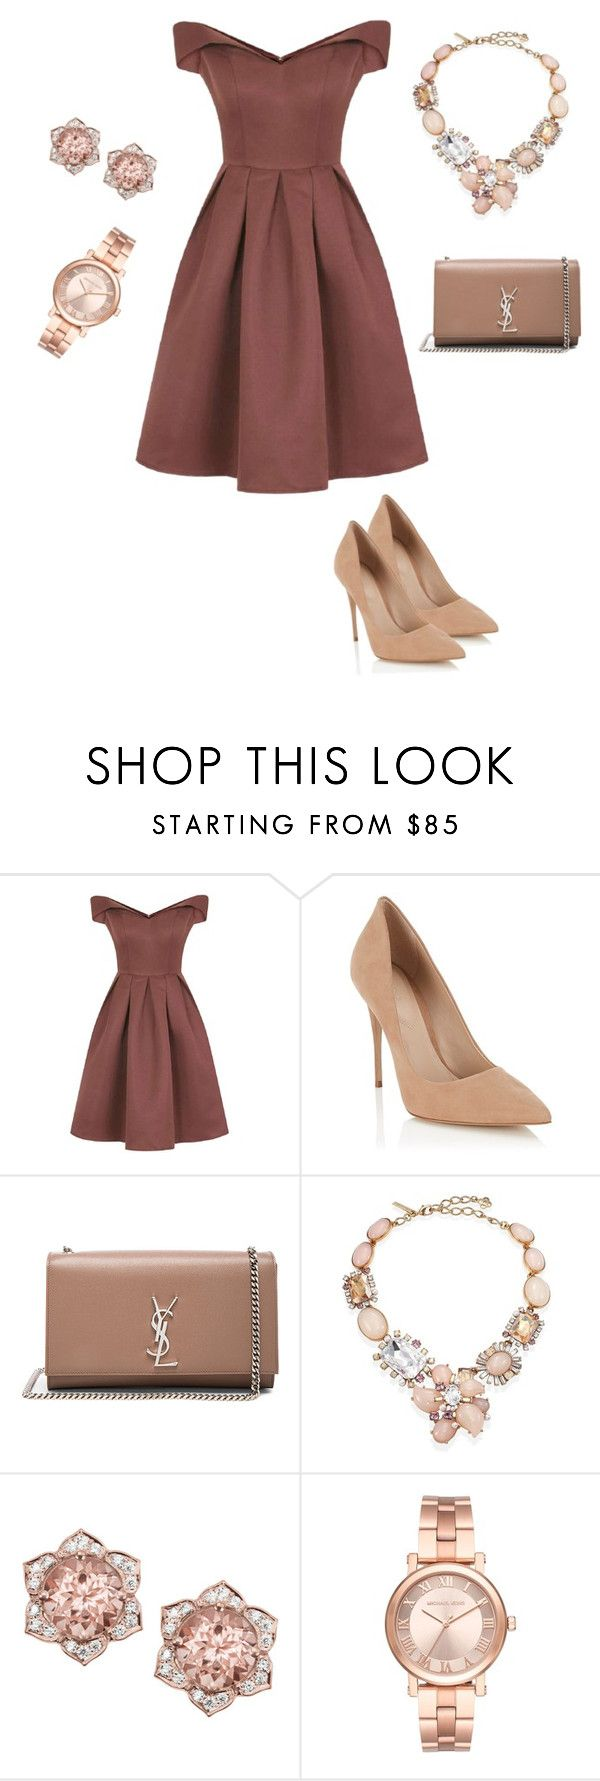 """""""Untitled #68"""" by fatimaka on Polyvore featuring Chi Chi, Lipsy, Yves Saint Laurent, Oscar de la Renta and Michael Kors"""